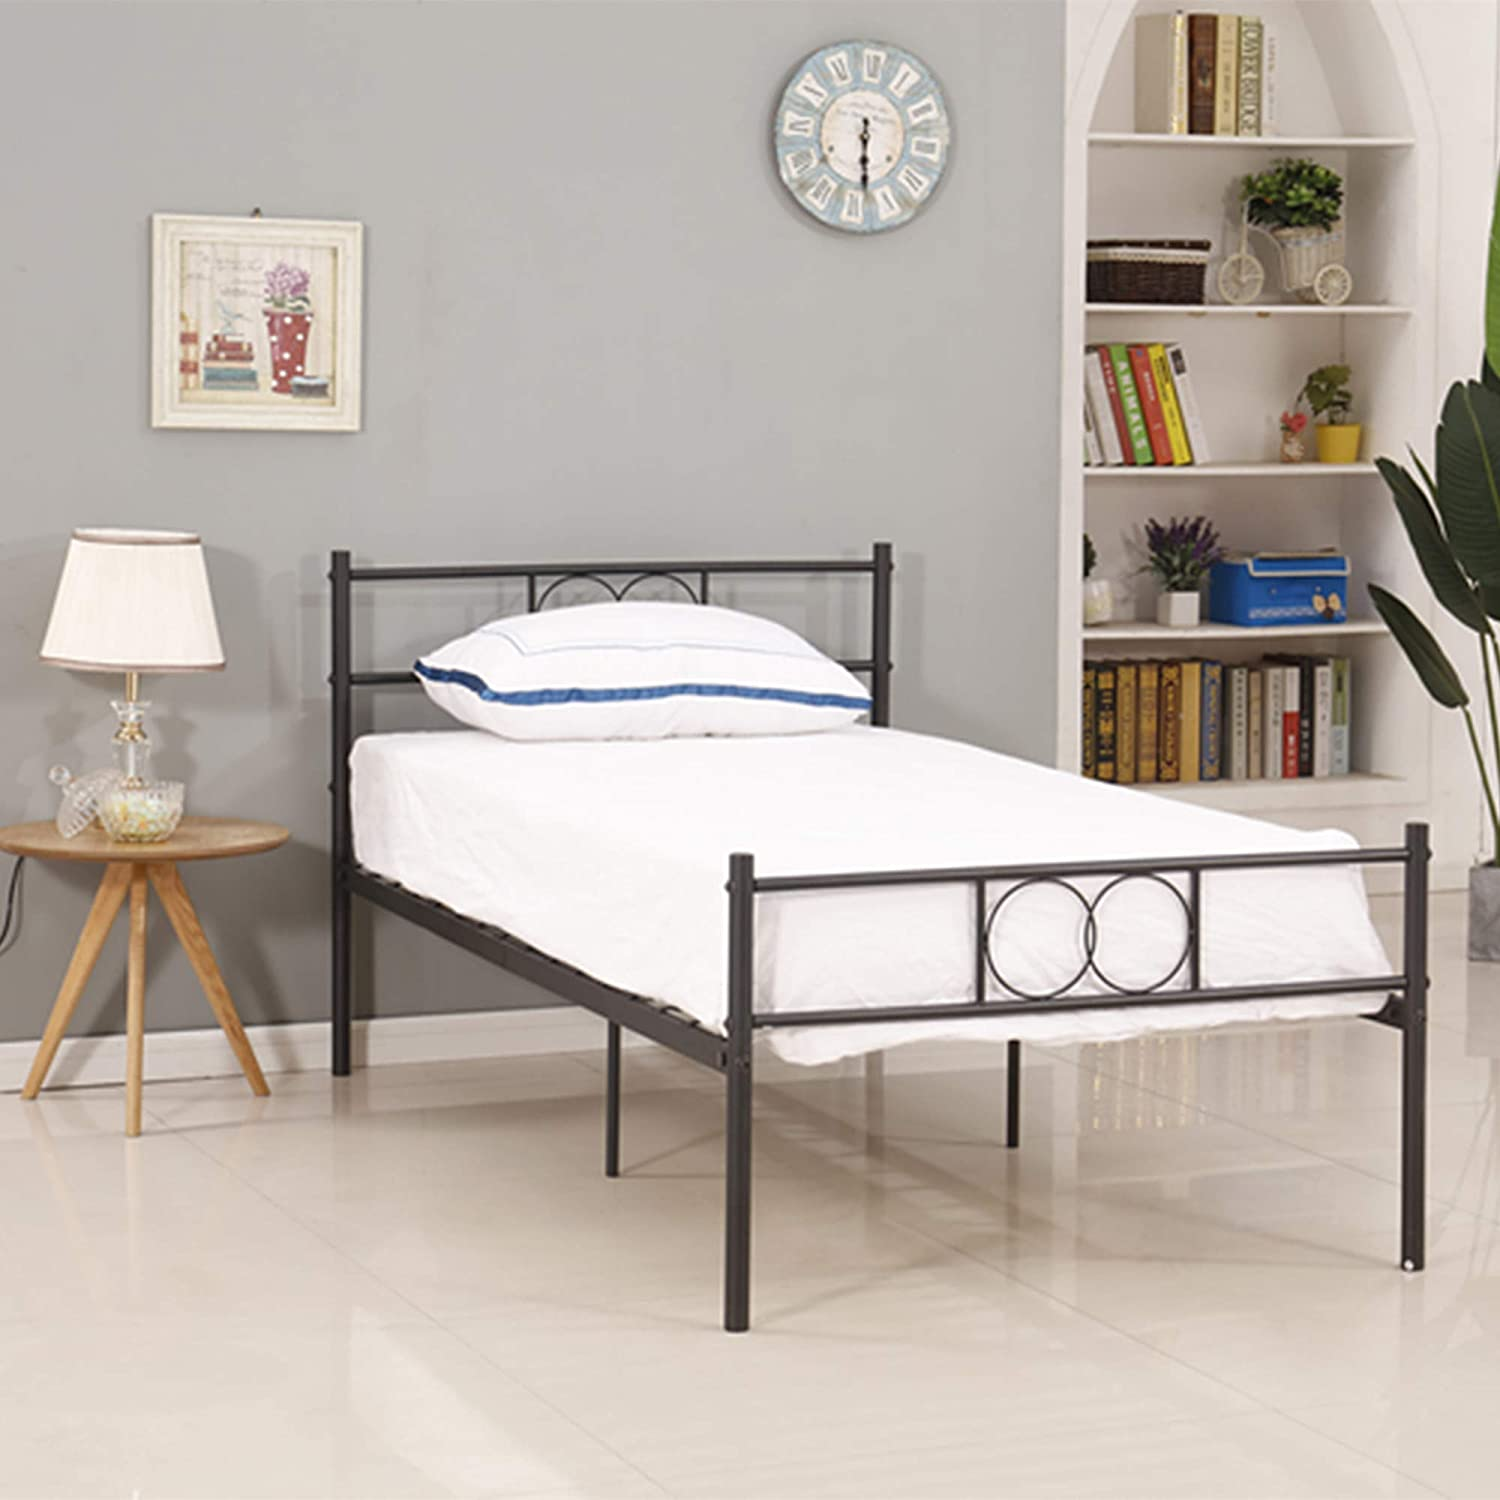 Homemark Metal Bed Frame Twin Size with Headboard, Beds Frames Underbed Storage | Single Platform Mattress Base | Noise Free | No Box Spring Needed | Black Metal Tube